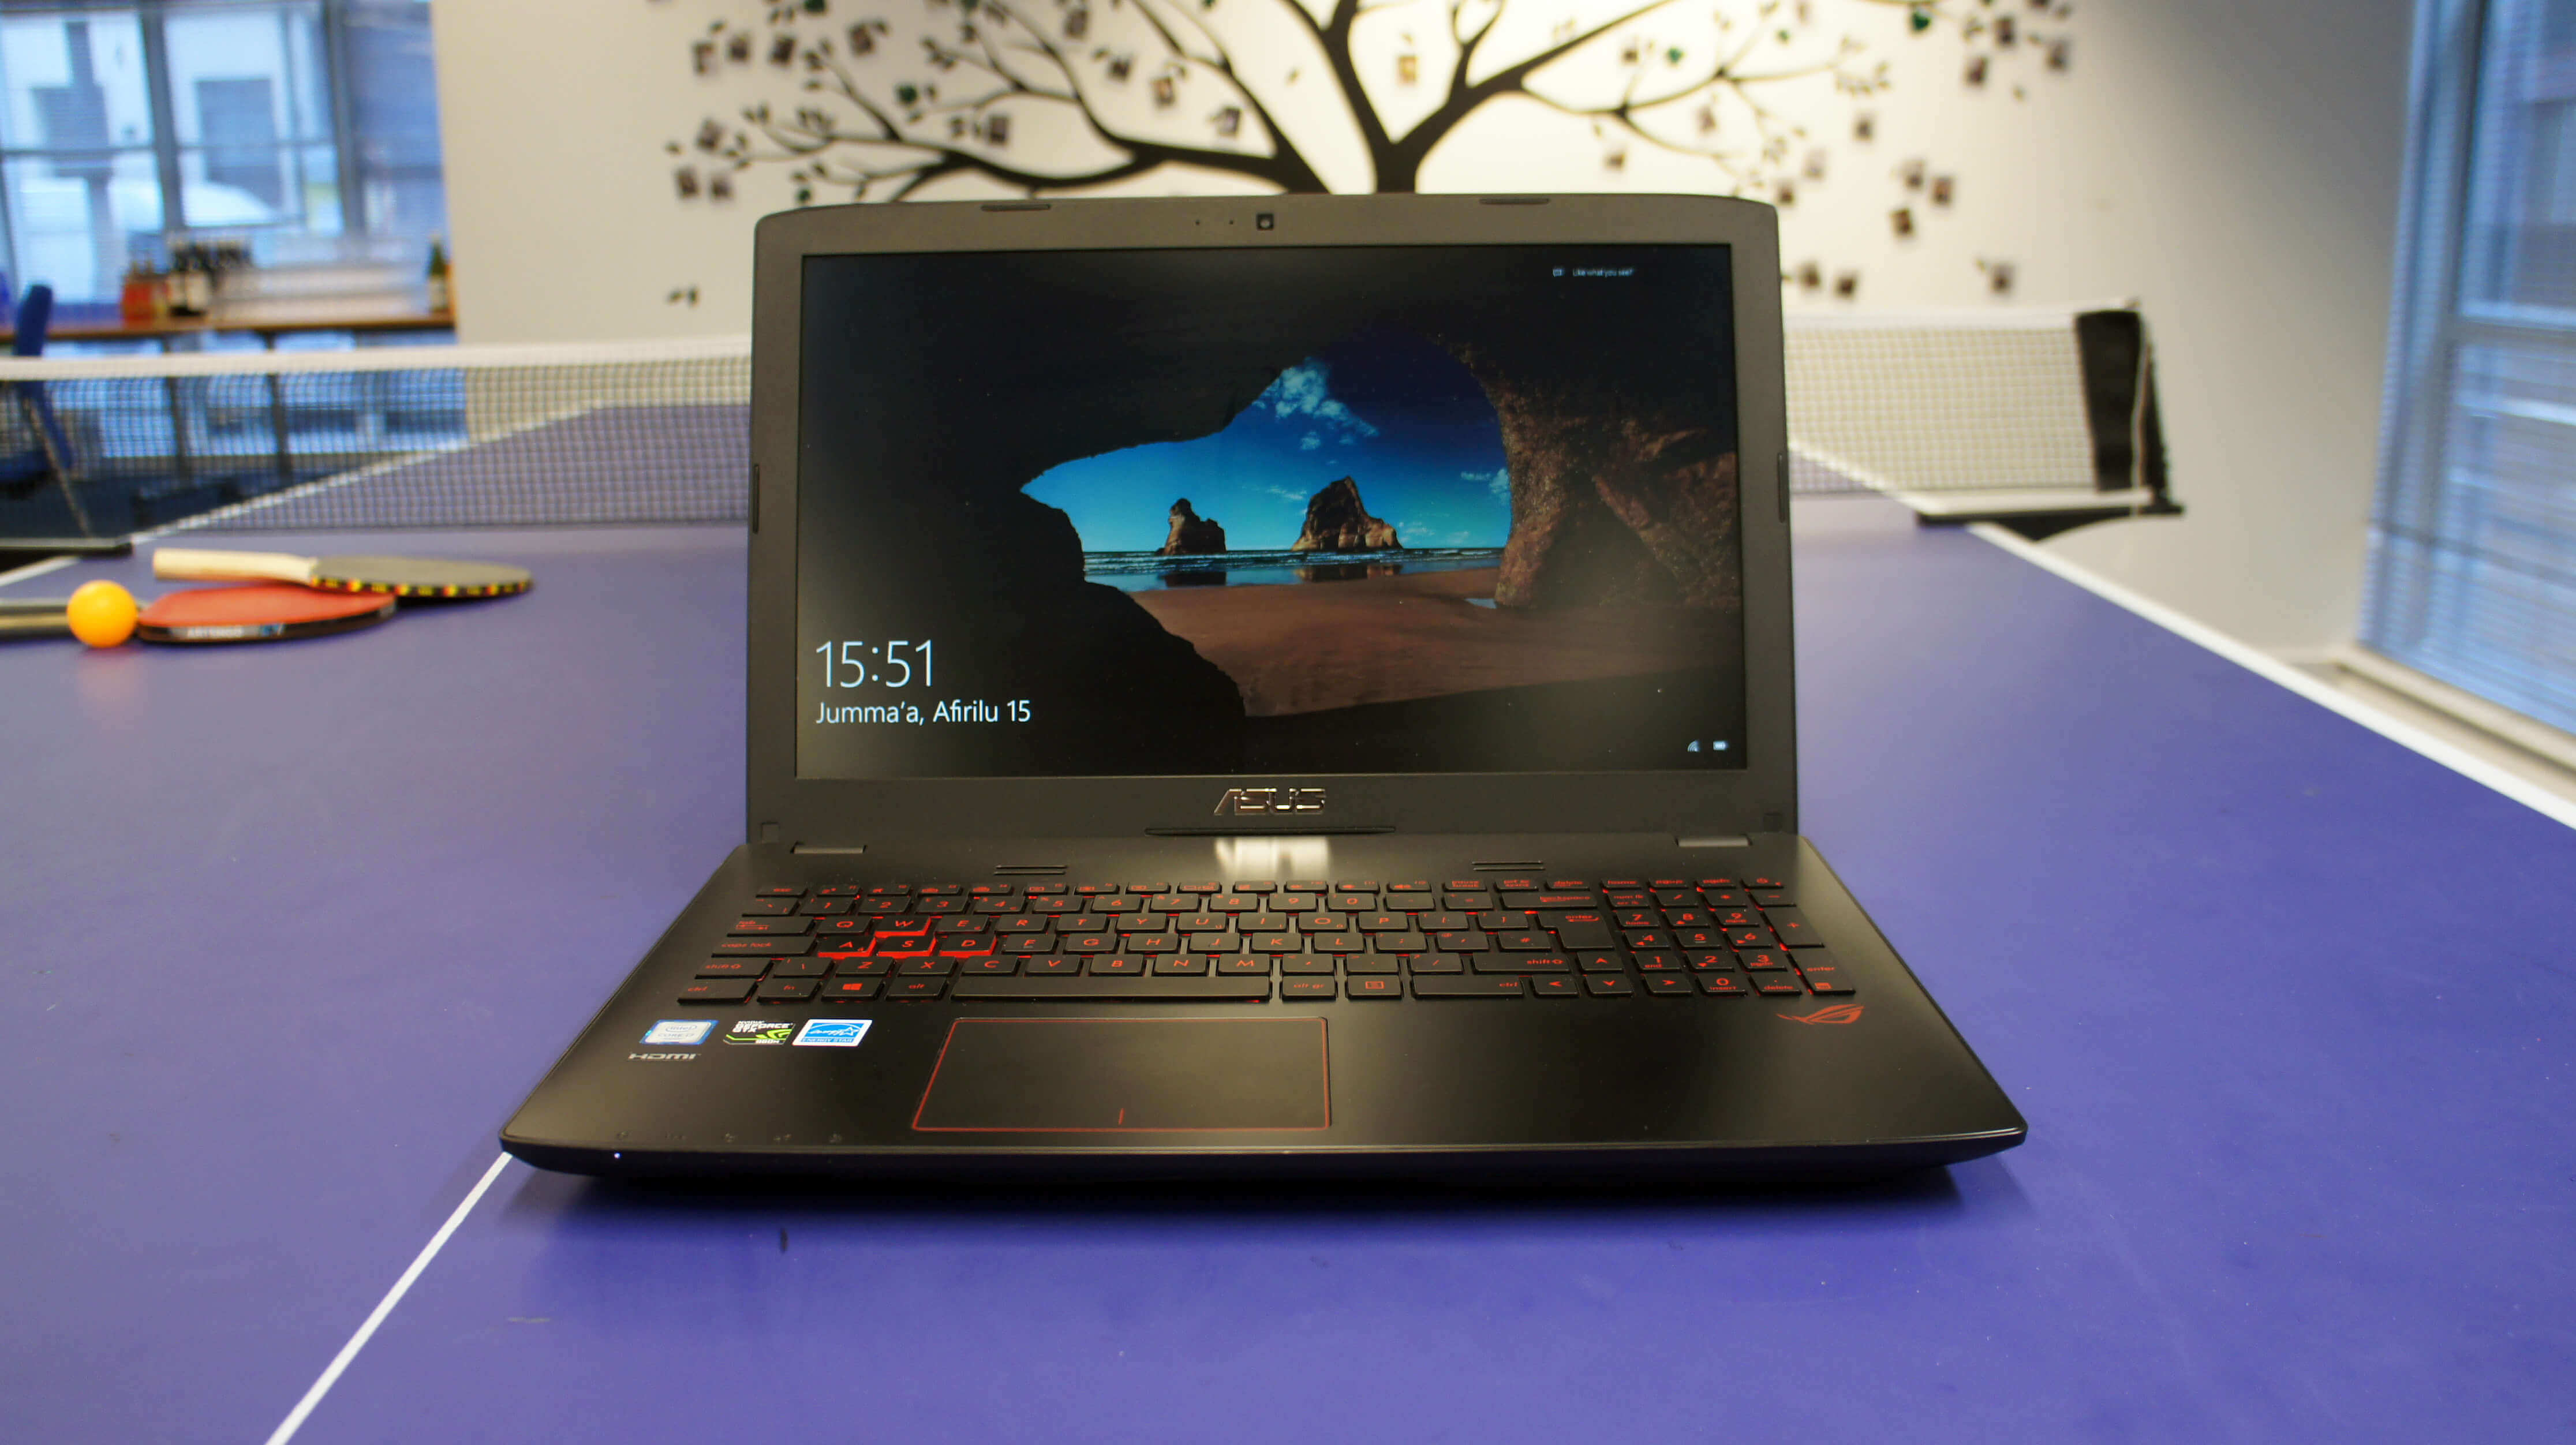 ASUS ROG GL552VW-DH74 15-Inch GTX 960m  Gaming Laptop under $1000 and under £800 GBP